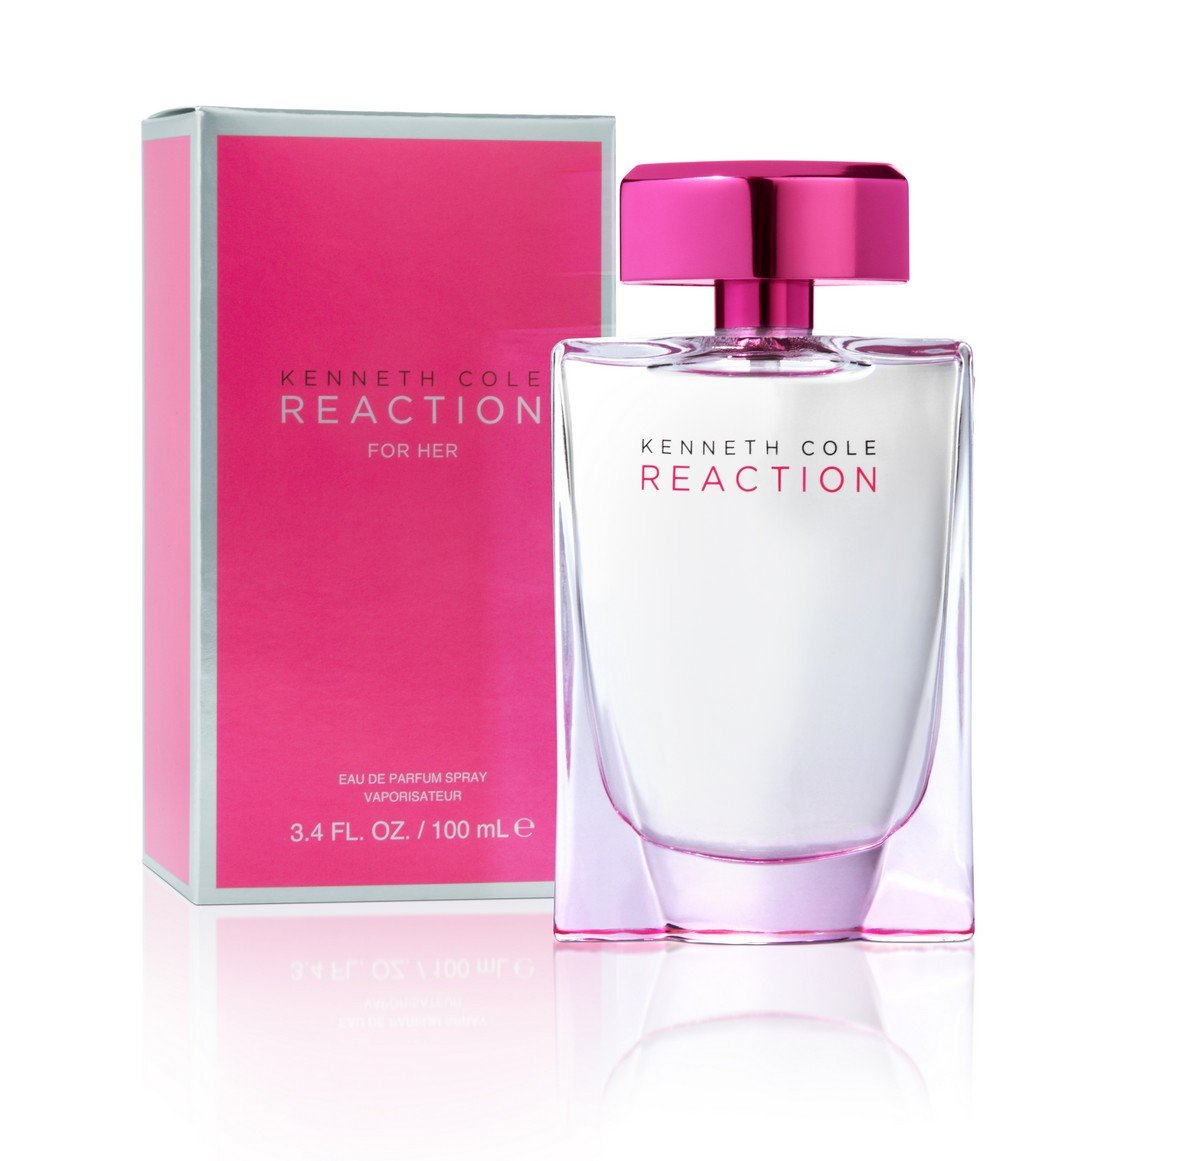 Kenneth Cole Reaction For Her Eau De Parfum